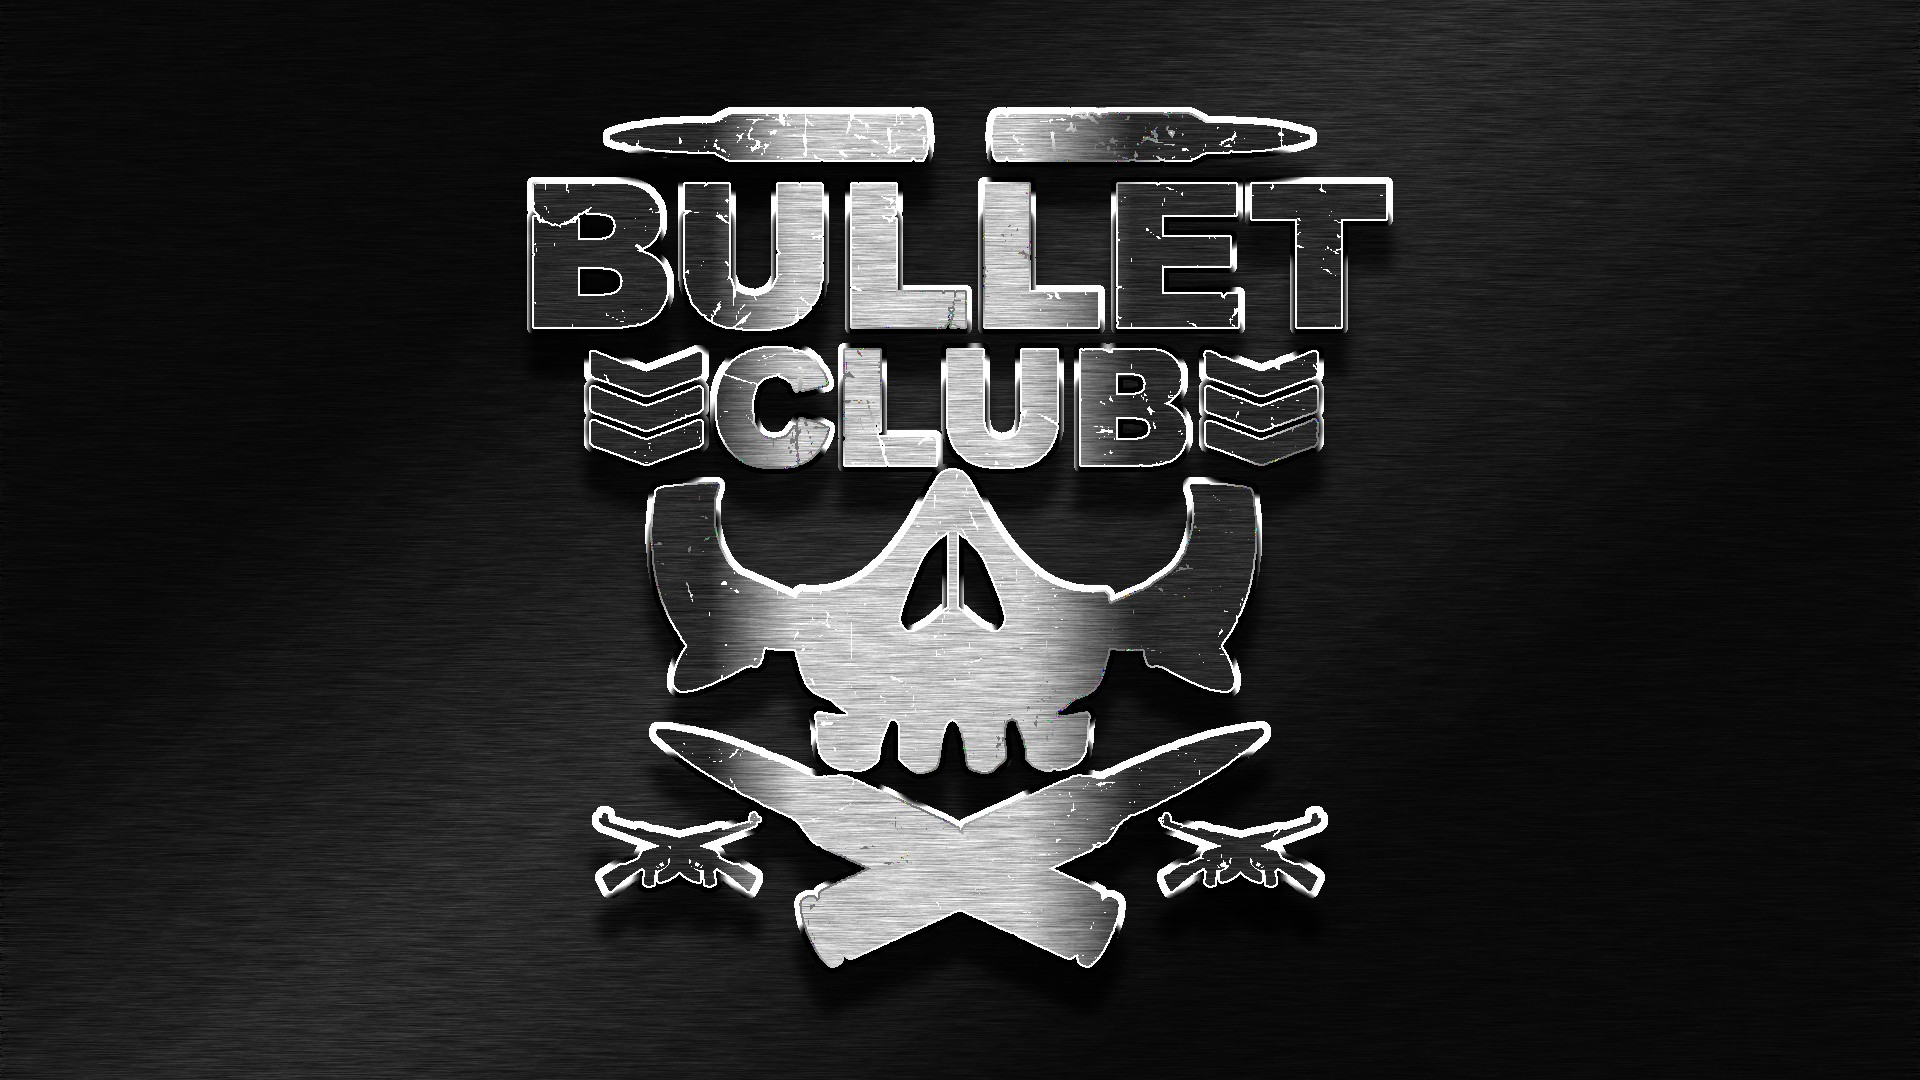 Bullet Club Wallpaper ① Download Free High Resolution Backgrounds